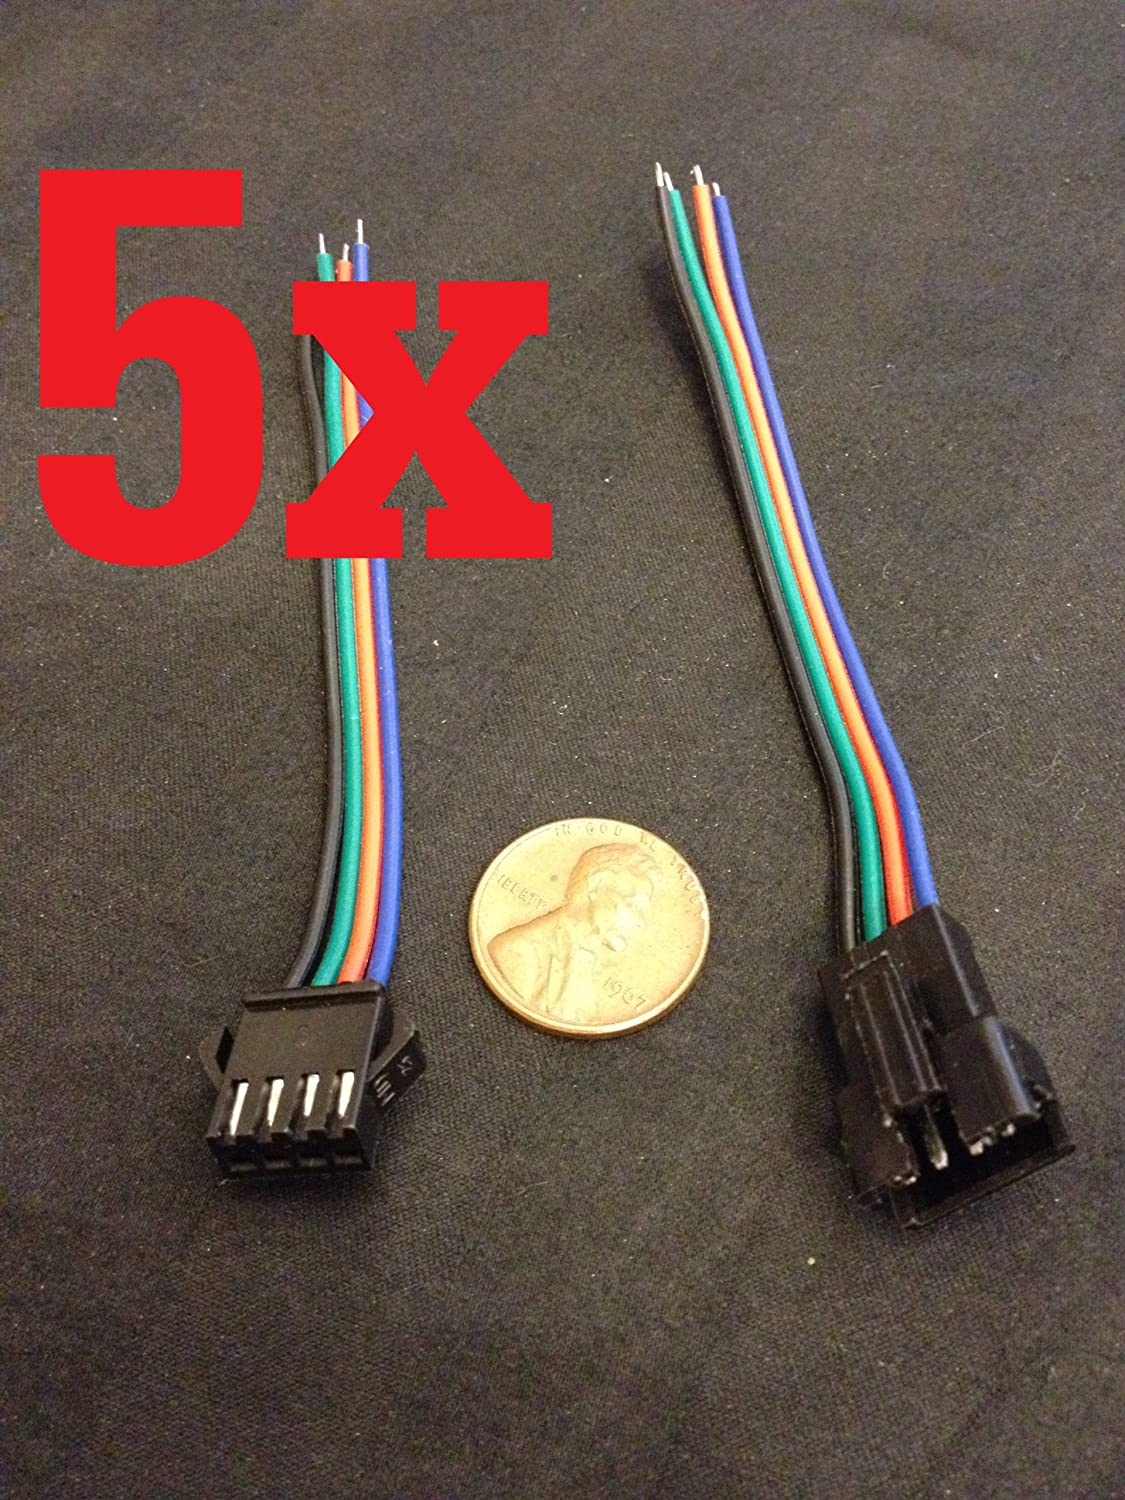 5 Set Jst 4 Pin Male Female Rgb Connector Wire Cable Led Wiring 3528 5050 Smd Strip A1 Home Improvement